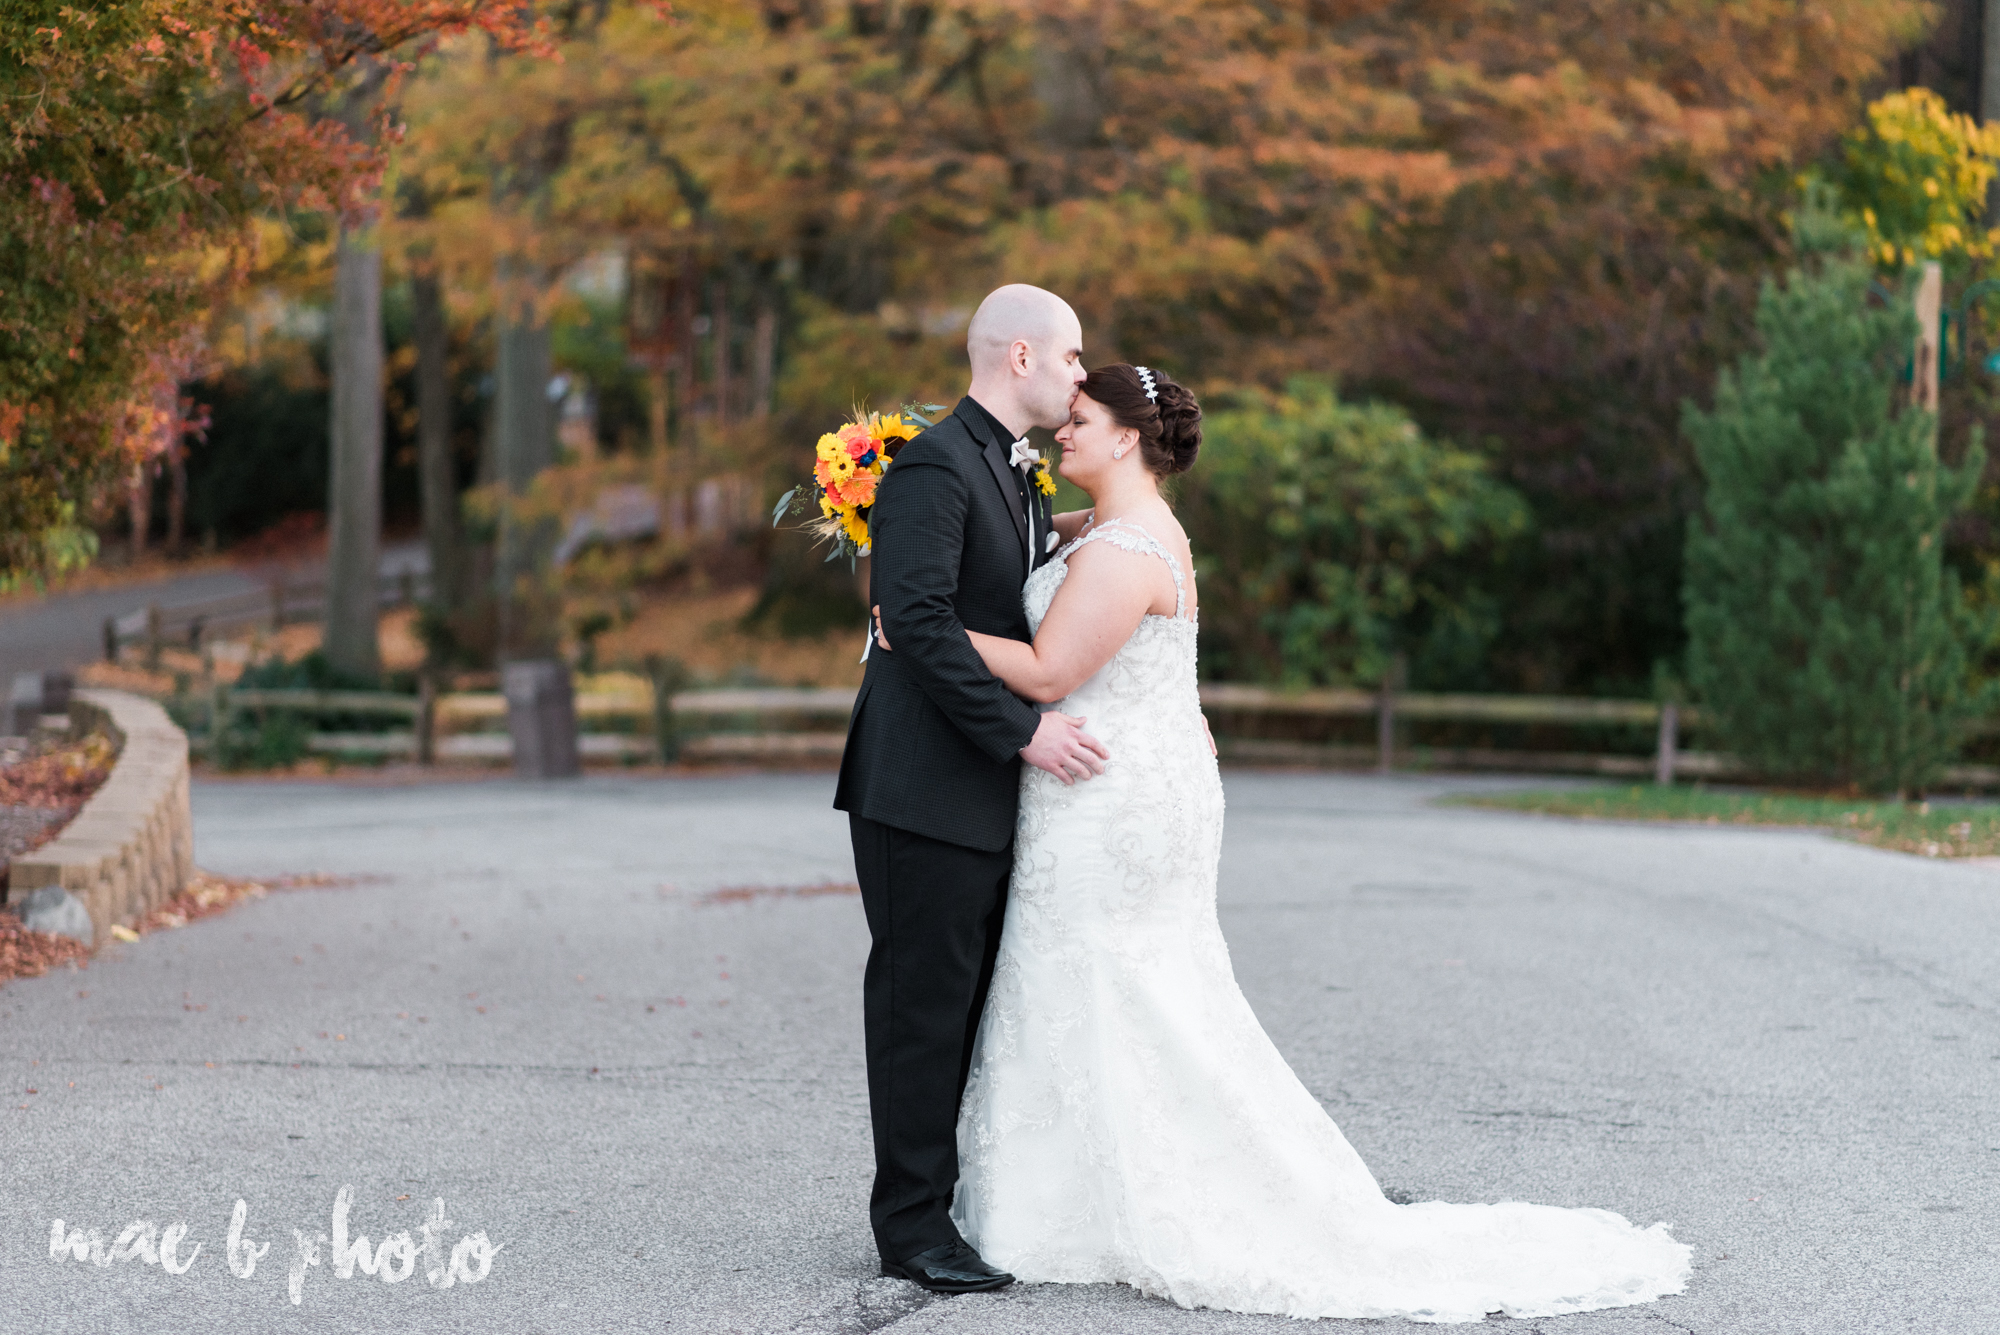 kaylynn & matt's fall zoo wedding at the cleveland metroparks zoo in cleveland ohio photographed by mae b photo-27.jpg